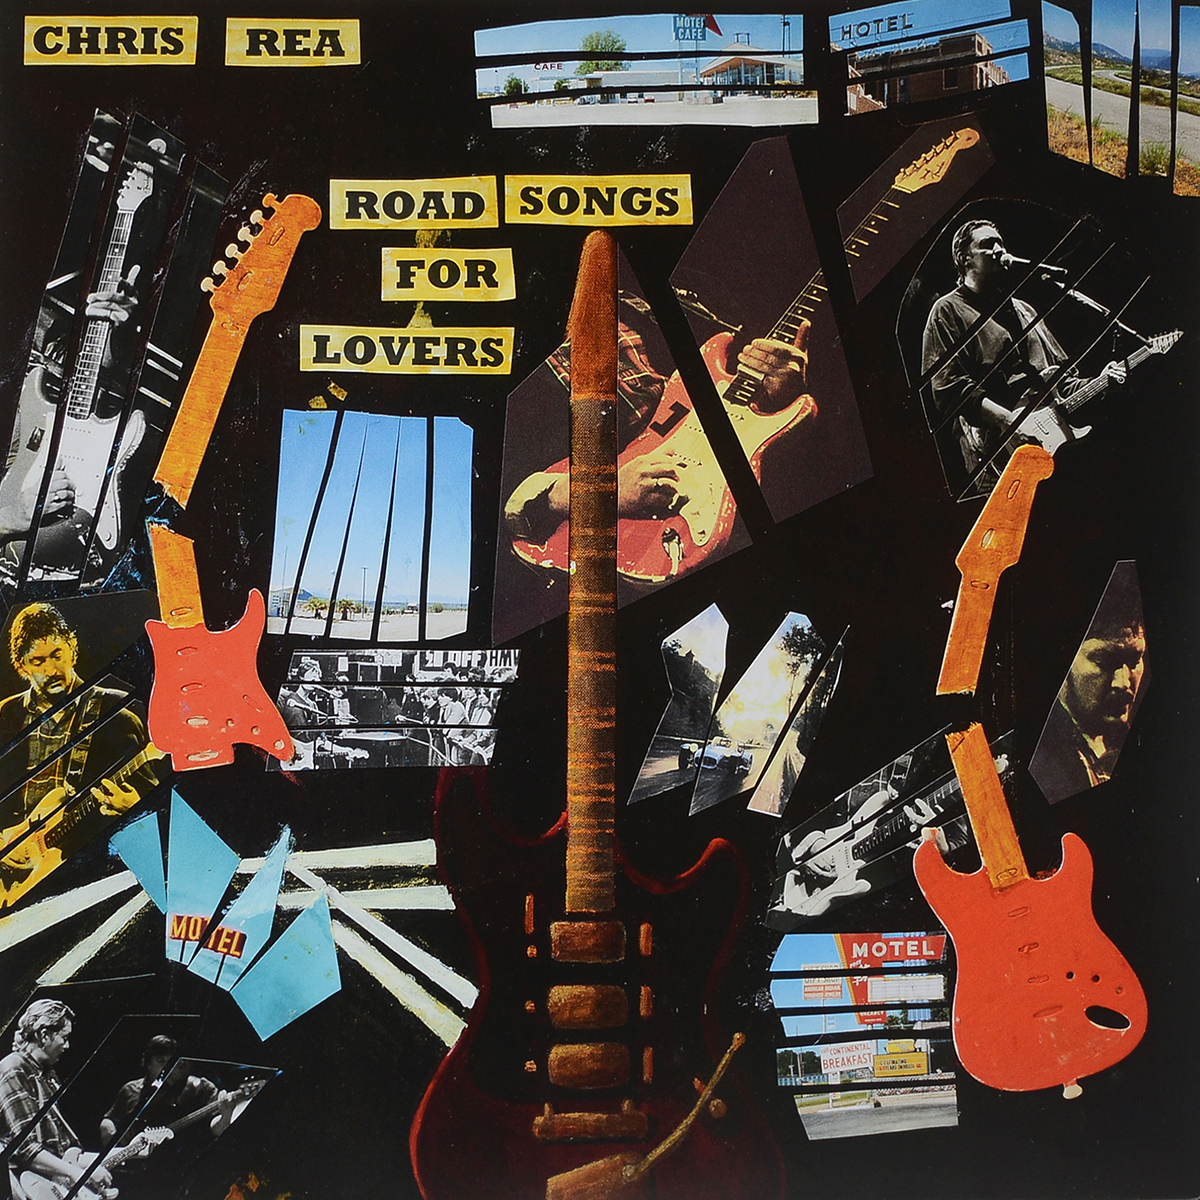 Крис Ри Chris Rea. Road Songs For Lovers (2 LP) крис ри chris rea king of the beach